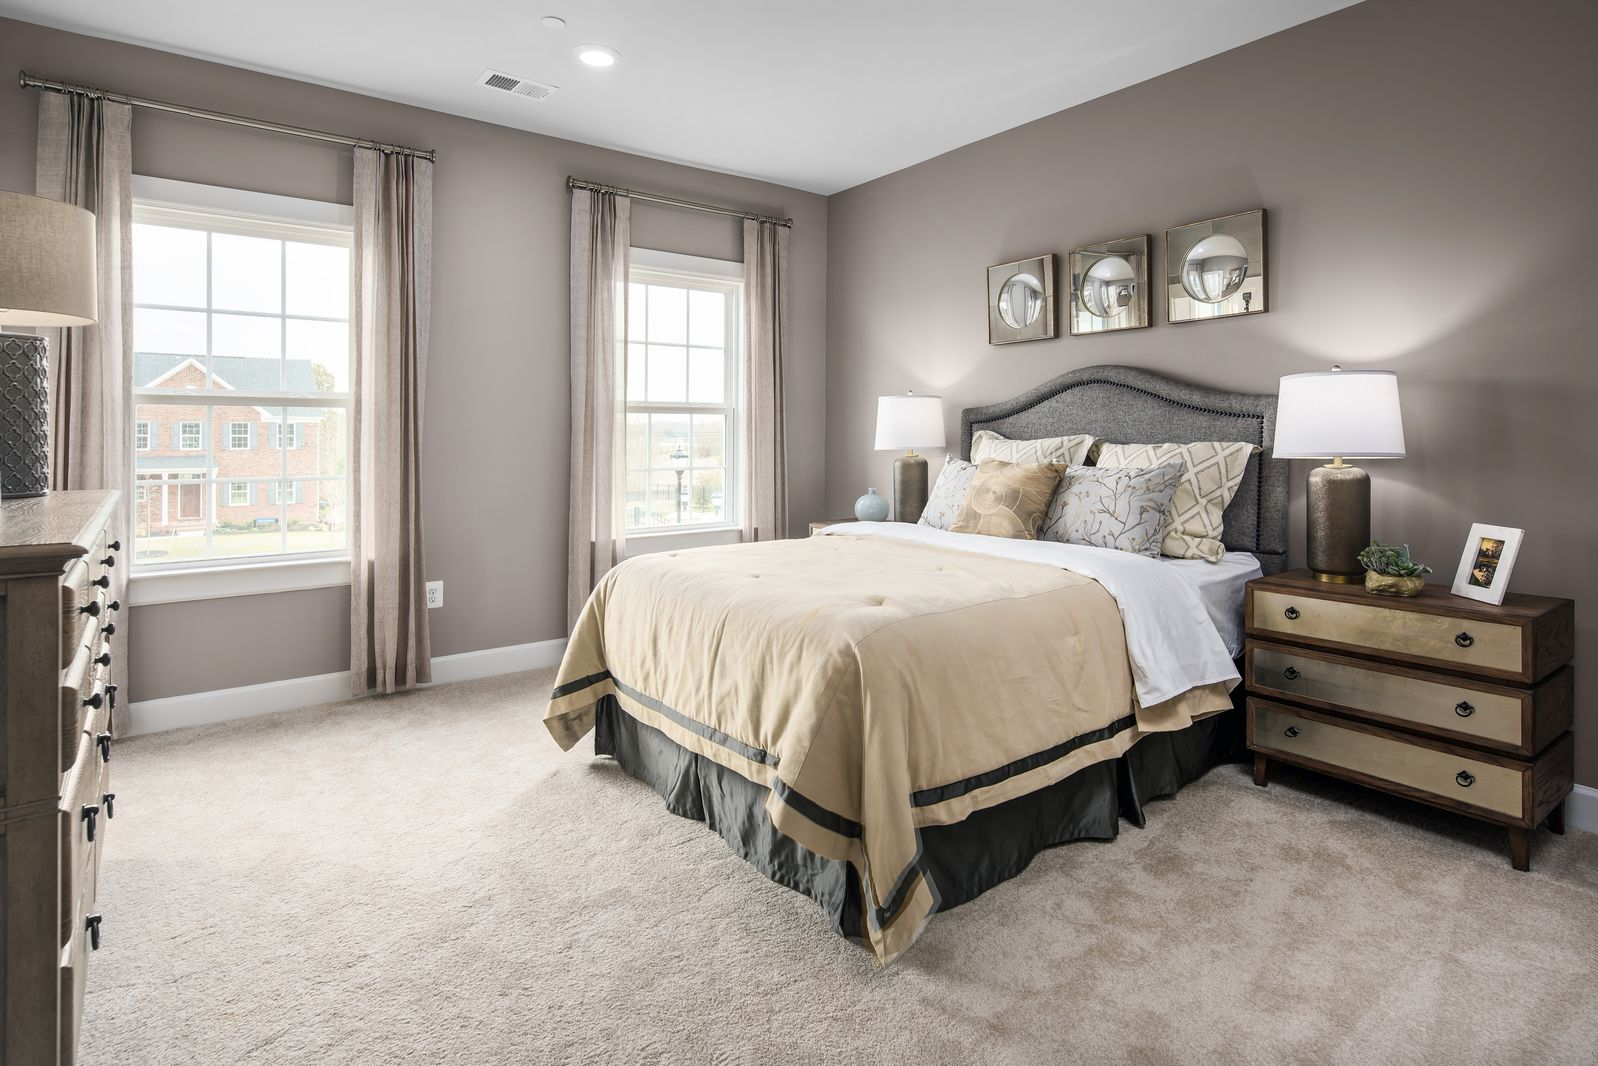 Bedroom featured in the Longwood By NVHomes in Baltimore, MD